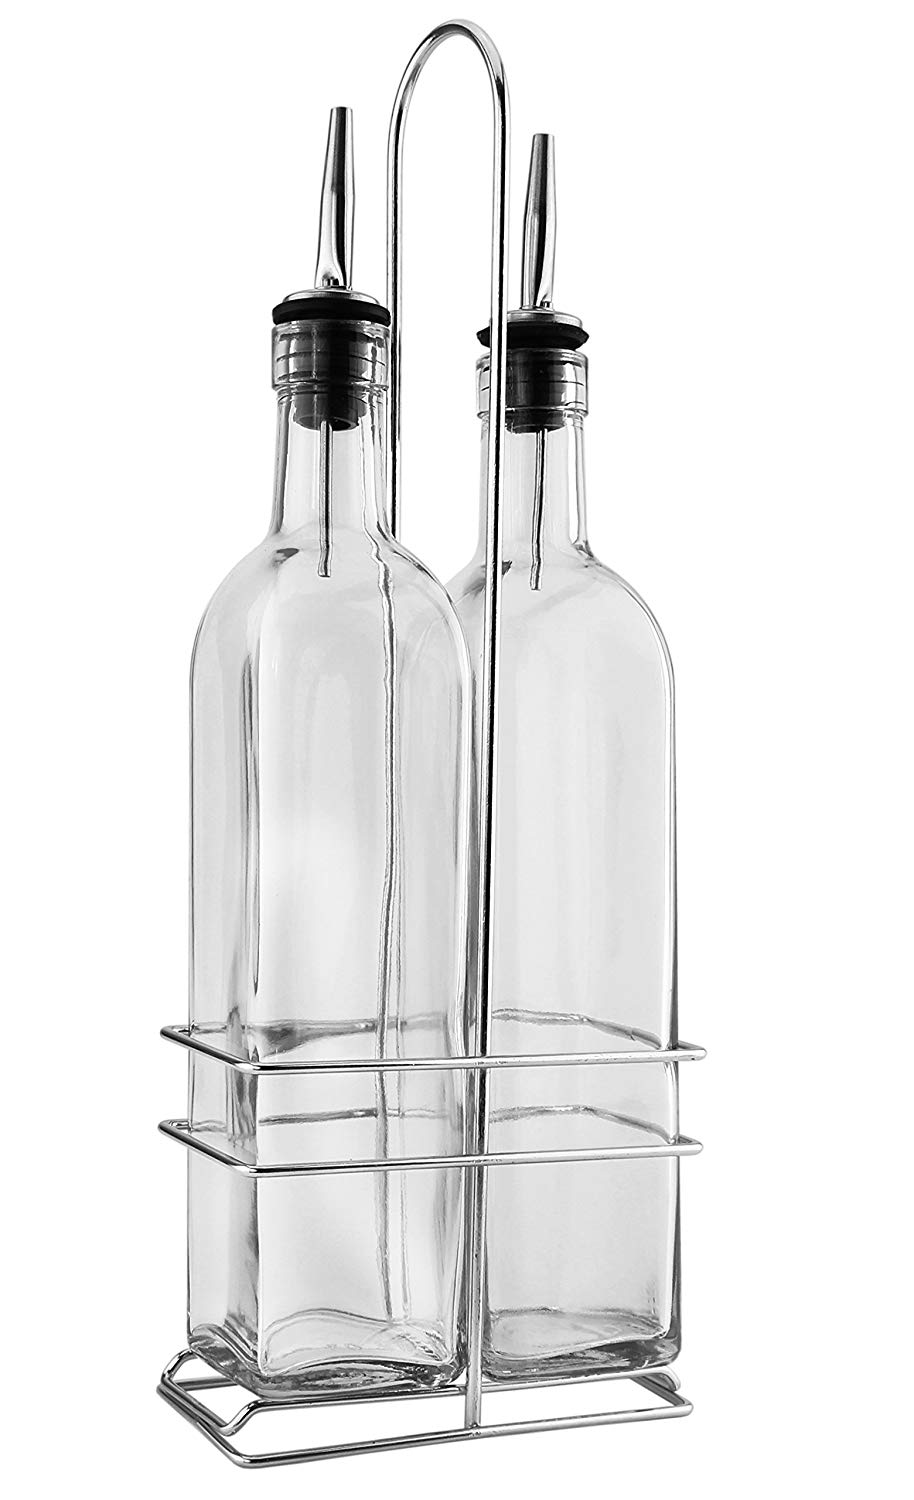 2-pack 17oz Home & Garden Gentle Oil And Vinegar Dispenser Salad Dressing Cruet Glass Bottles